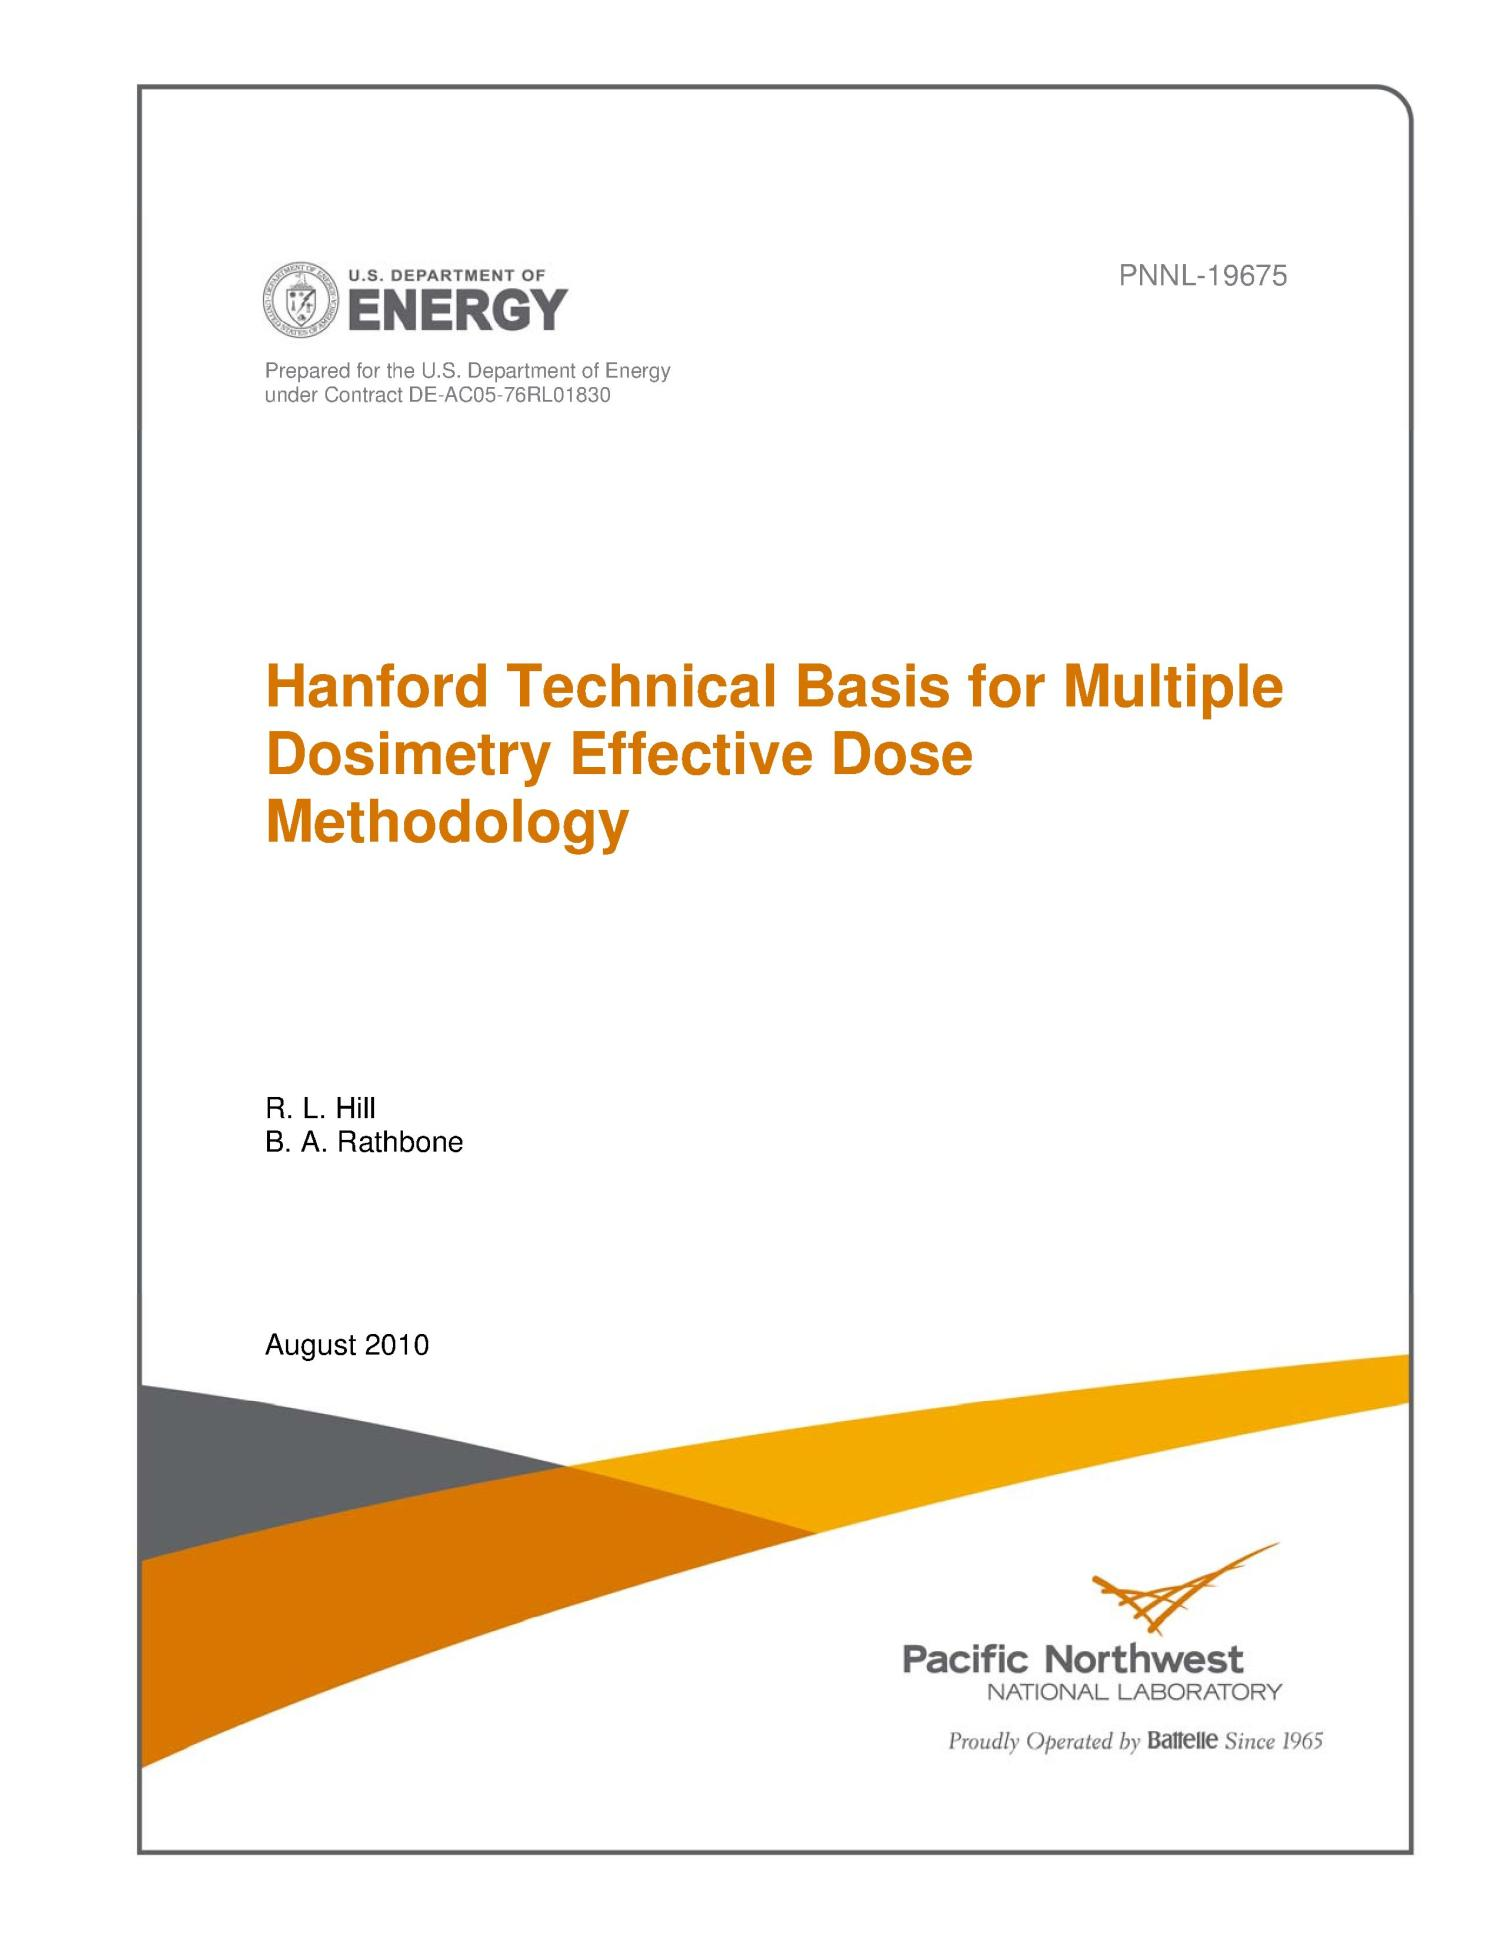 Hanford Technical Basis for Multiple Dosimetry Effective Dose Methodology                                                                                                      [Sequence #]: 1 of 15